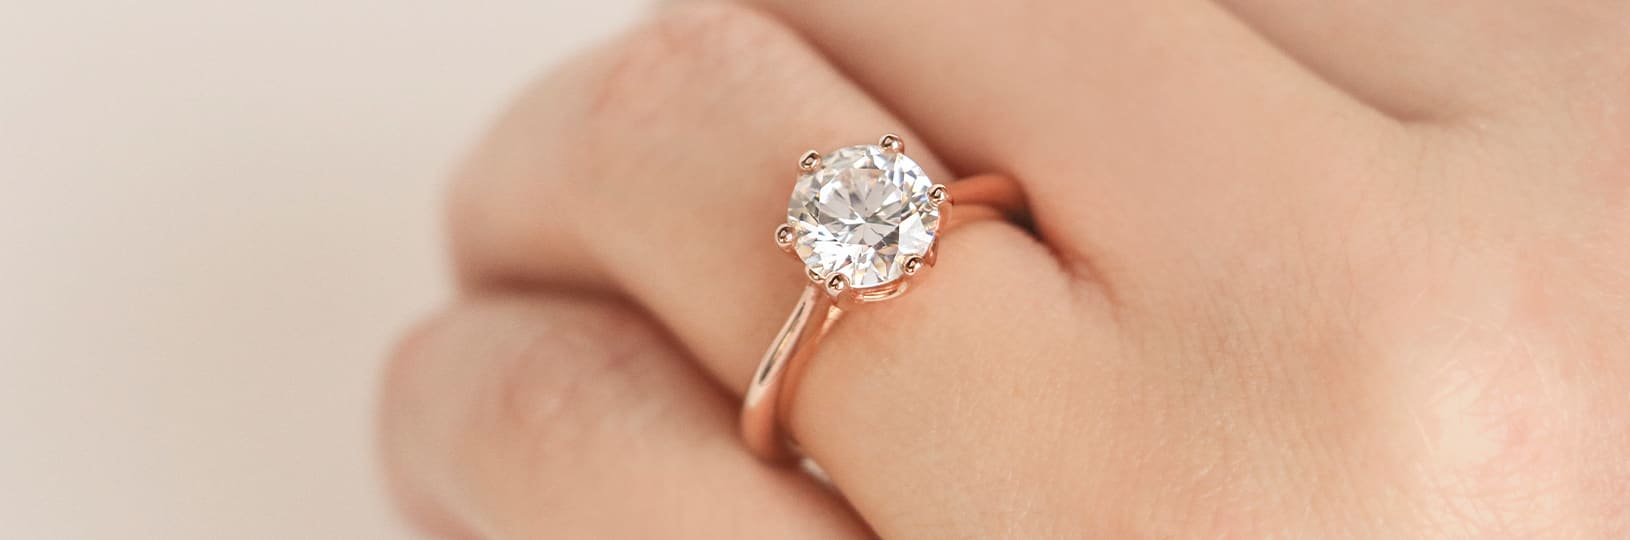 Solitaire engagement ring.